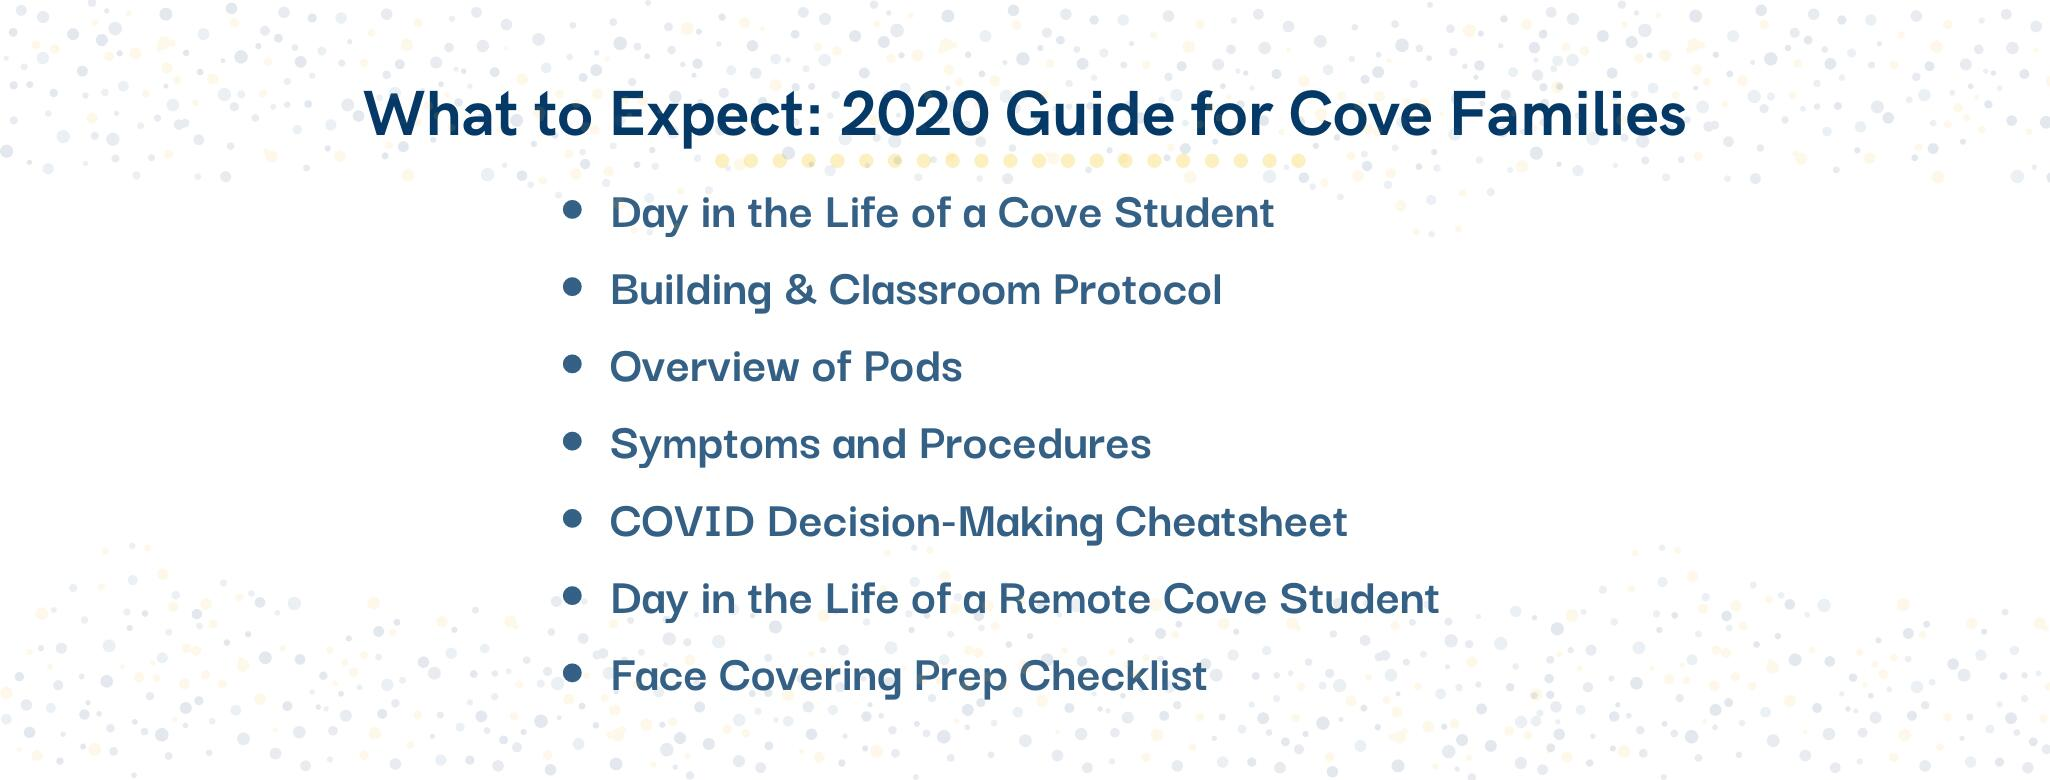 What to expect 2020 guide for Cove Families